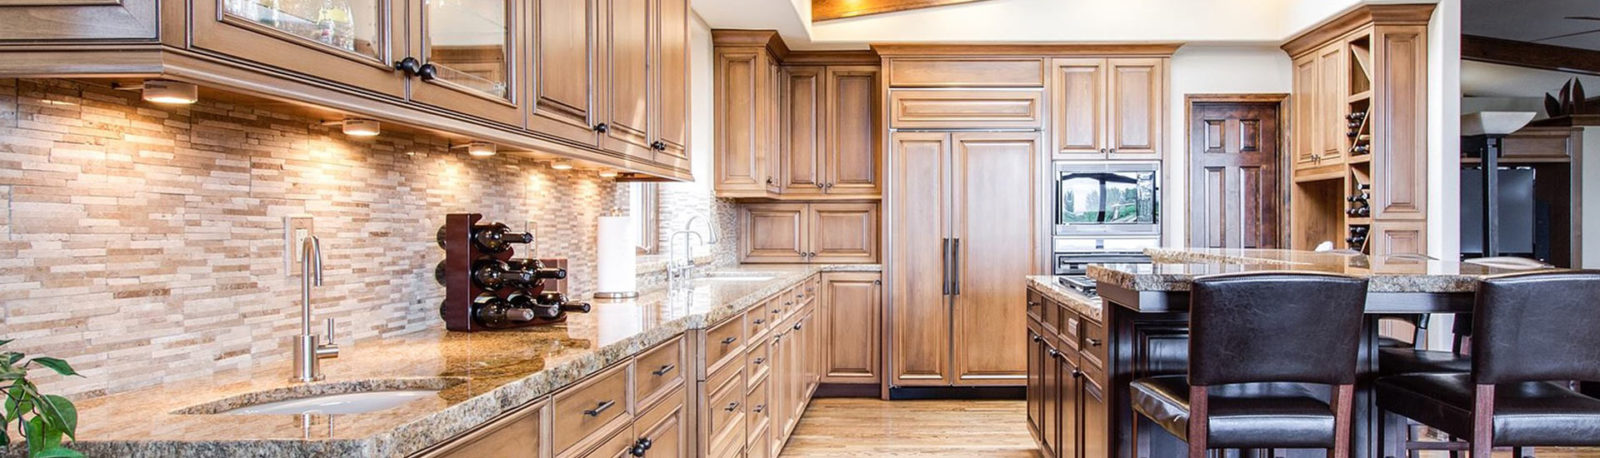 Kitchen Renovation in Paradise NV, Spring Valley NV, Las Vegas